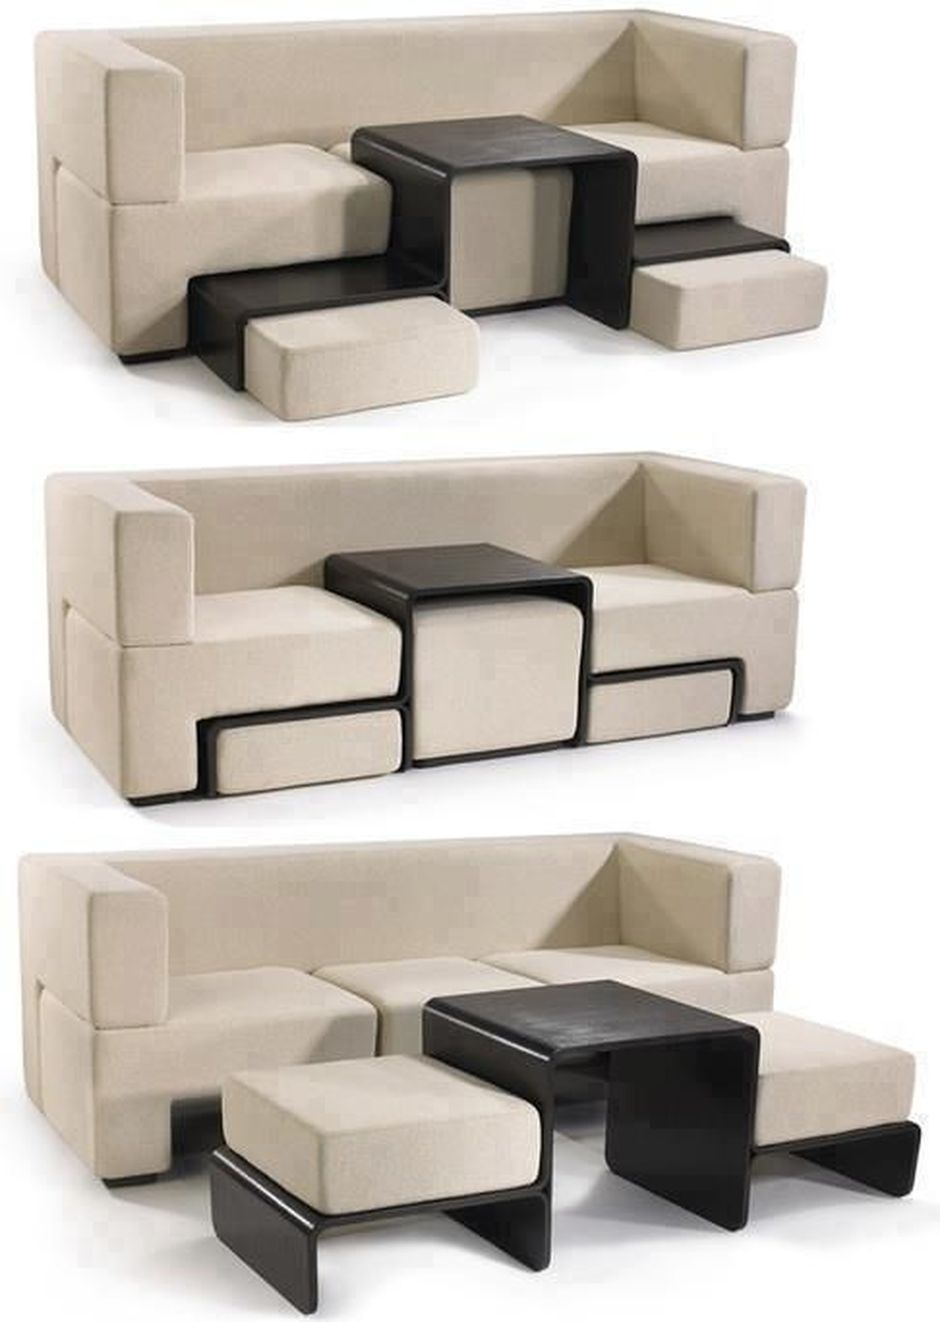 Bezaubernd Coole Sofas Beste Wahl Cool Modular And Convertible Sofa Design For